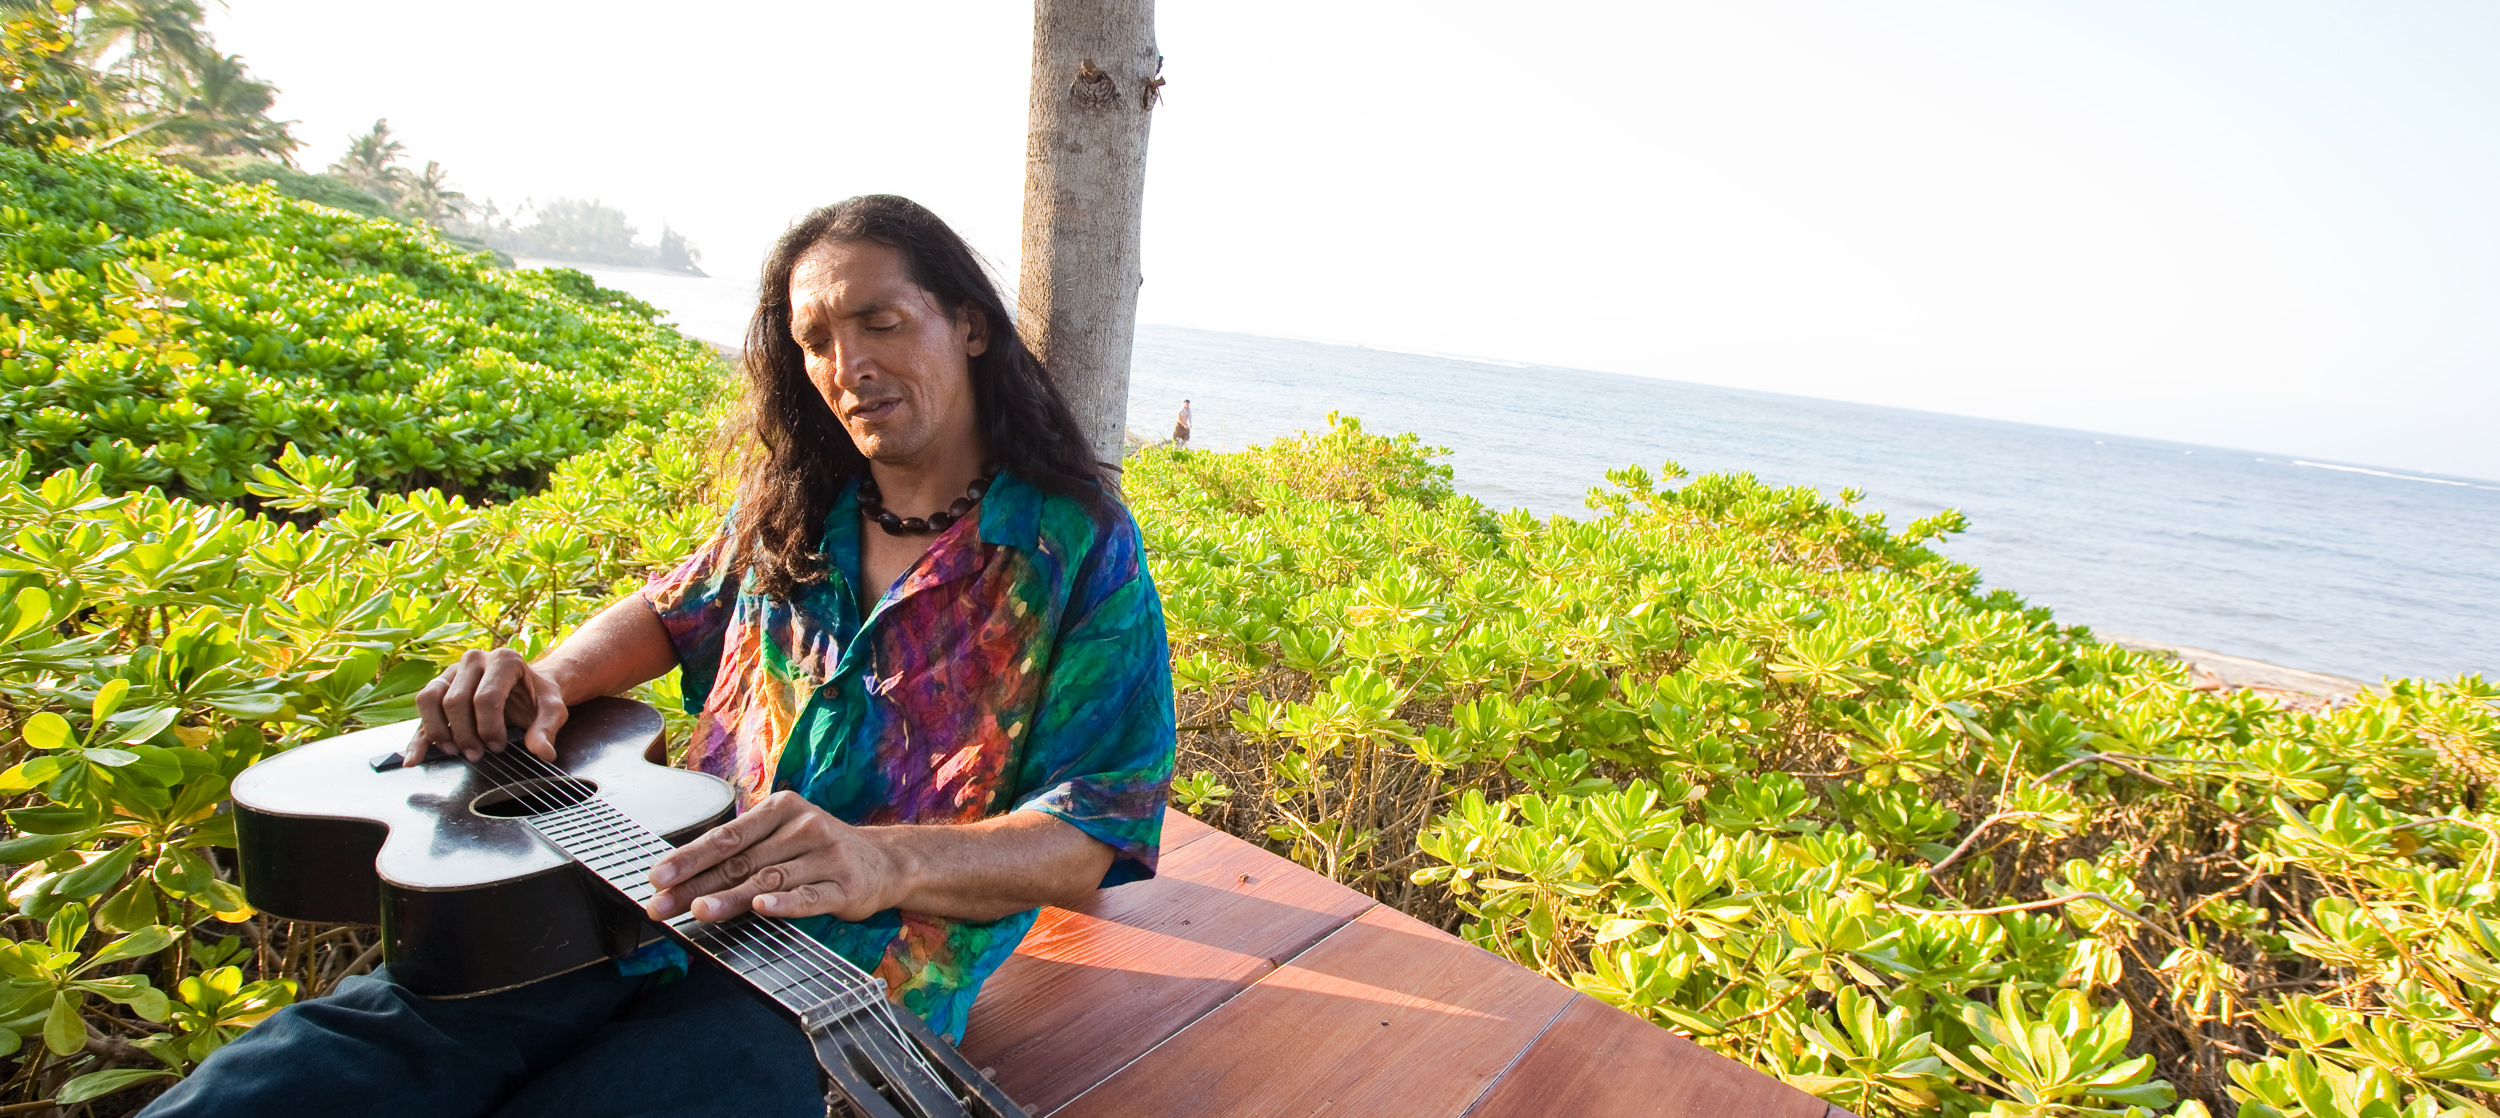 Man sitting with guitar facing flat up on lap playing by the ocean